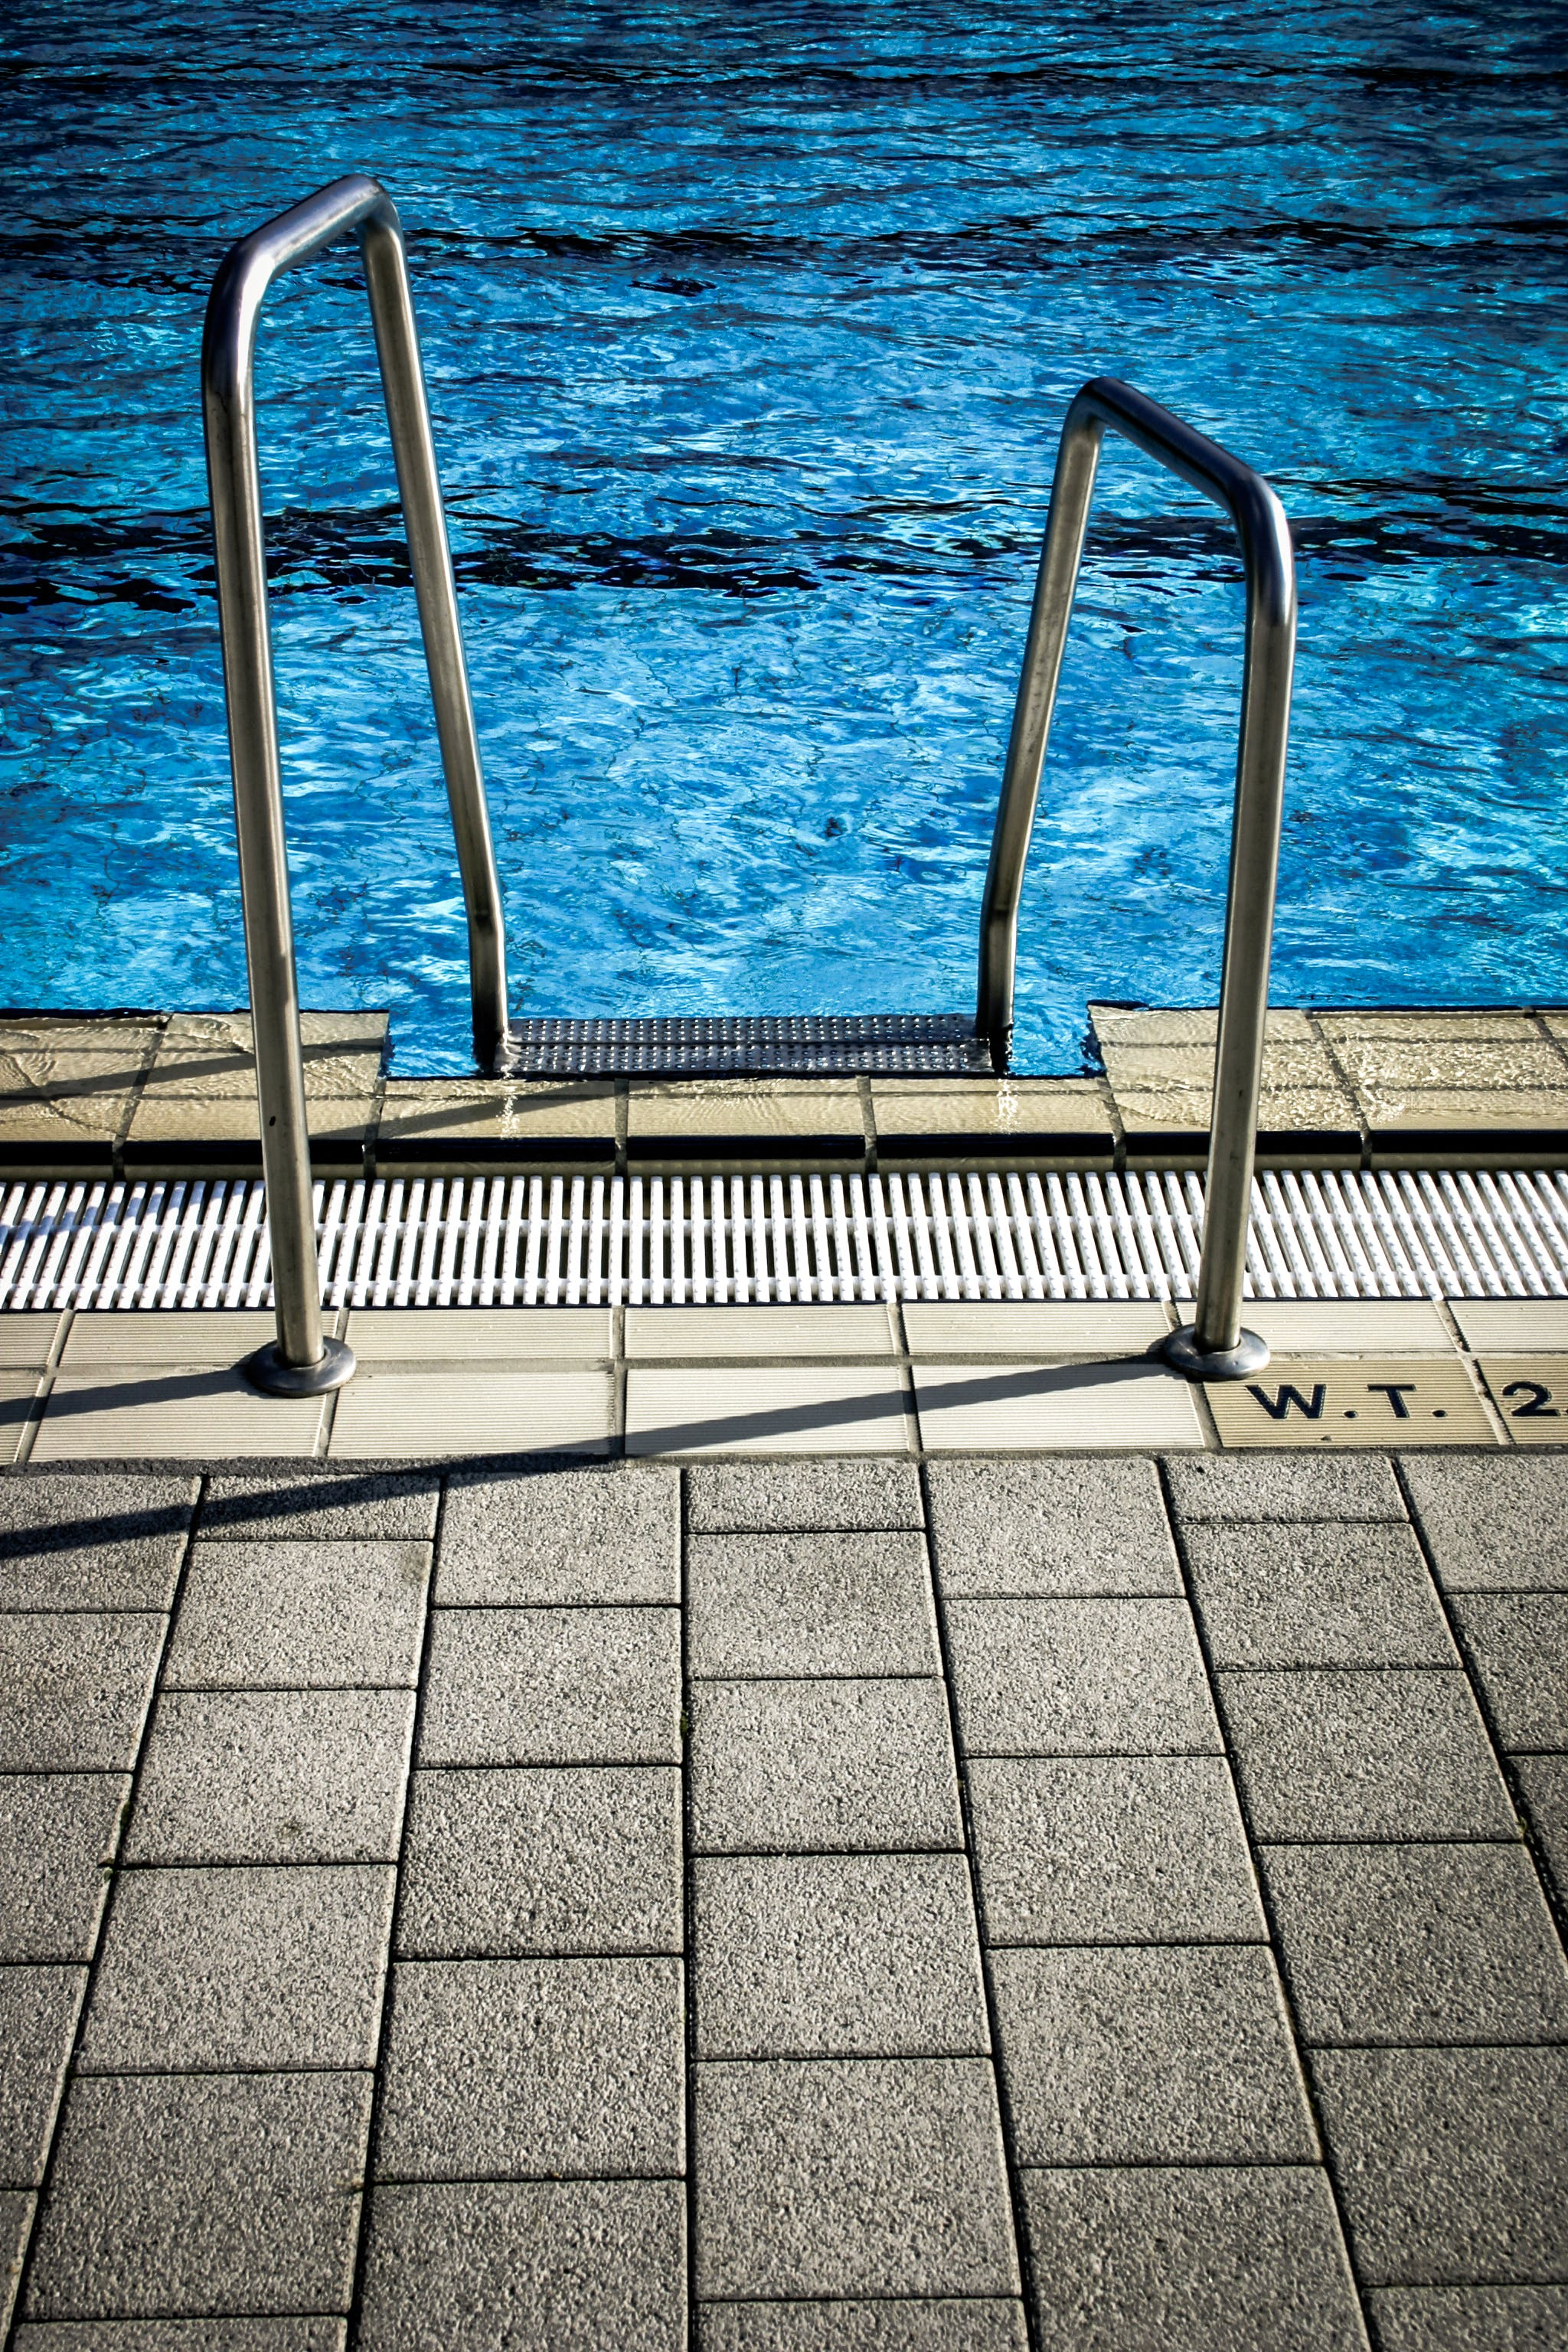 Free stock photo of water, pattern, tiles, swimming pool